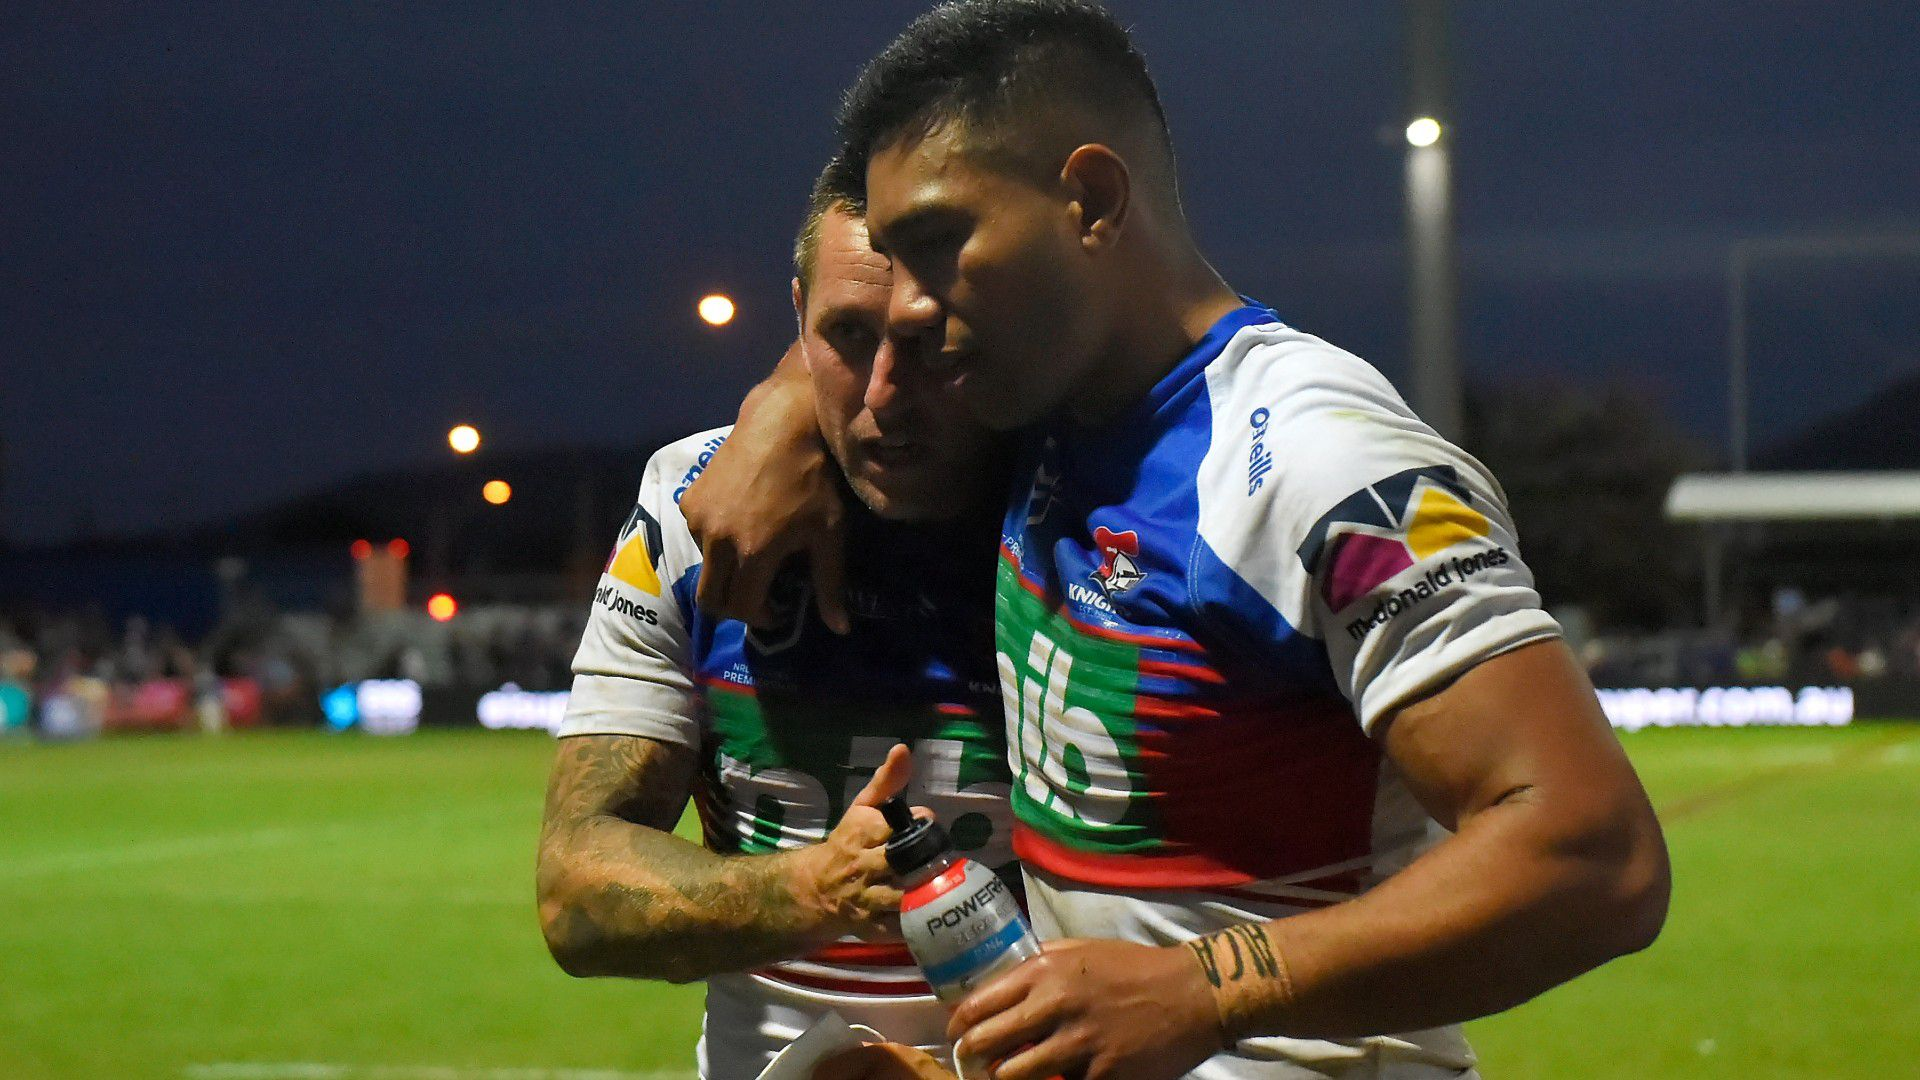 EXCLUSIVE: Newcastle Knights will be the NRL's big improvers in 2022, says Peter Sterling